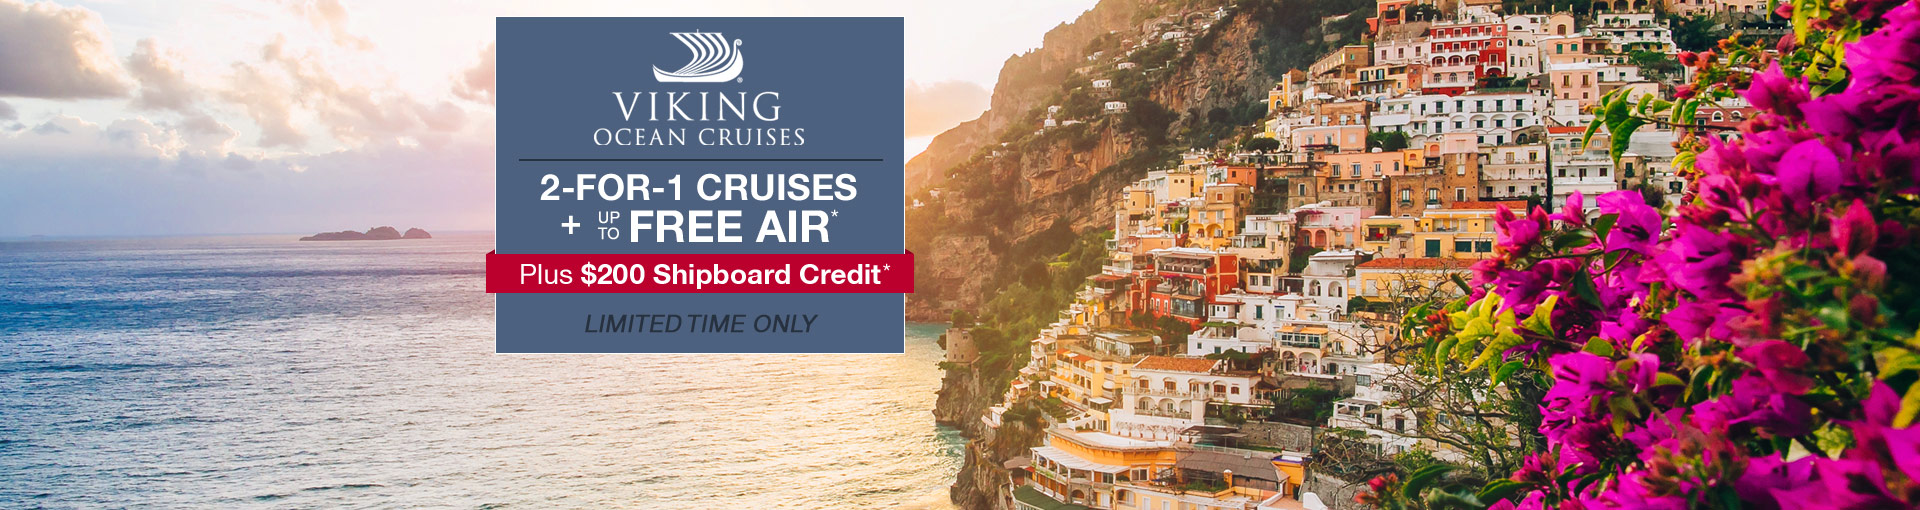 Viking Ocean Cruises: 2-for-1 Cruises plus up to FREE Airfare